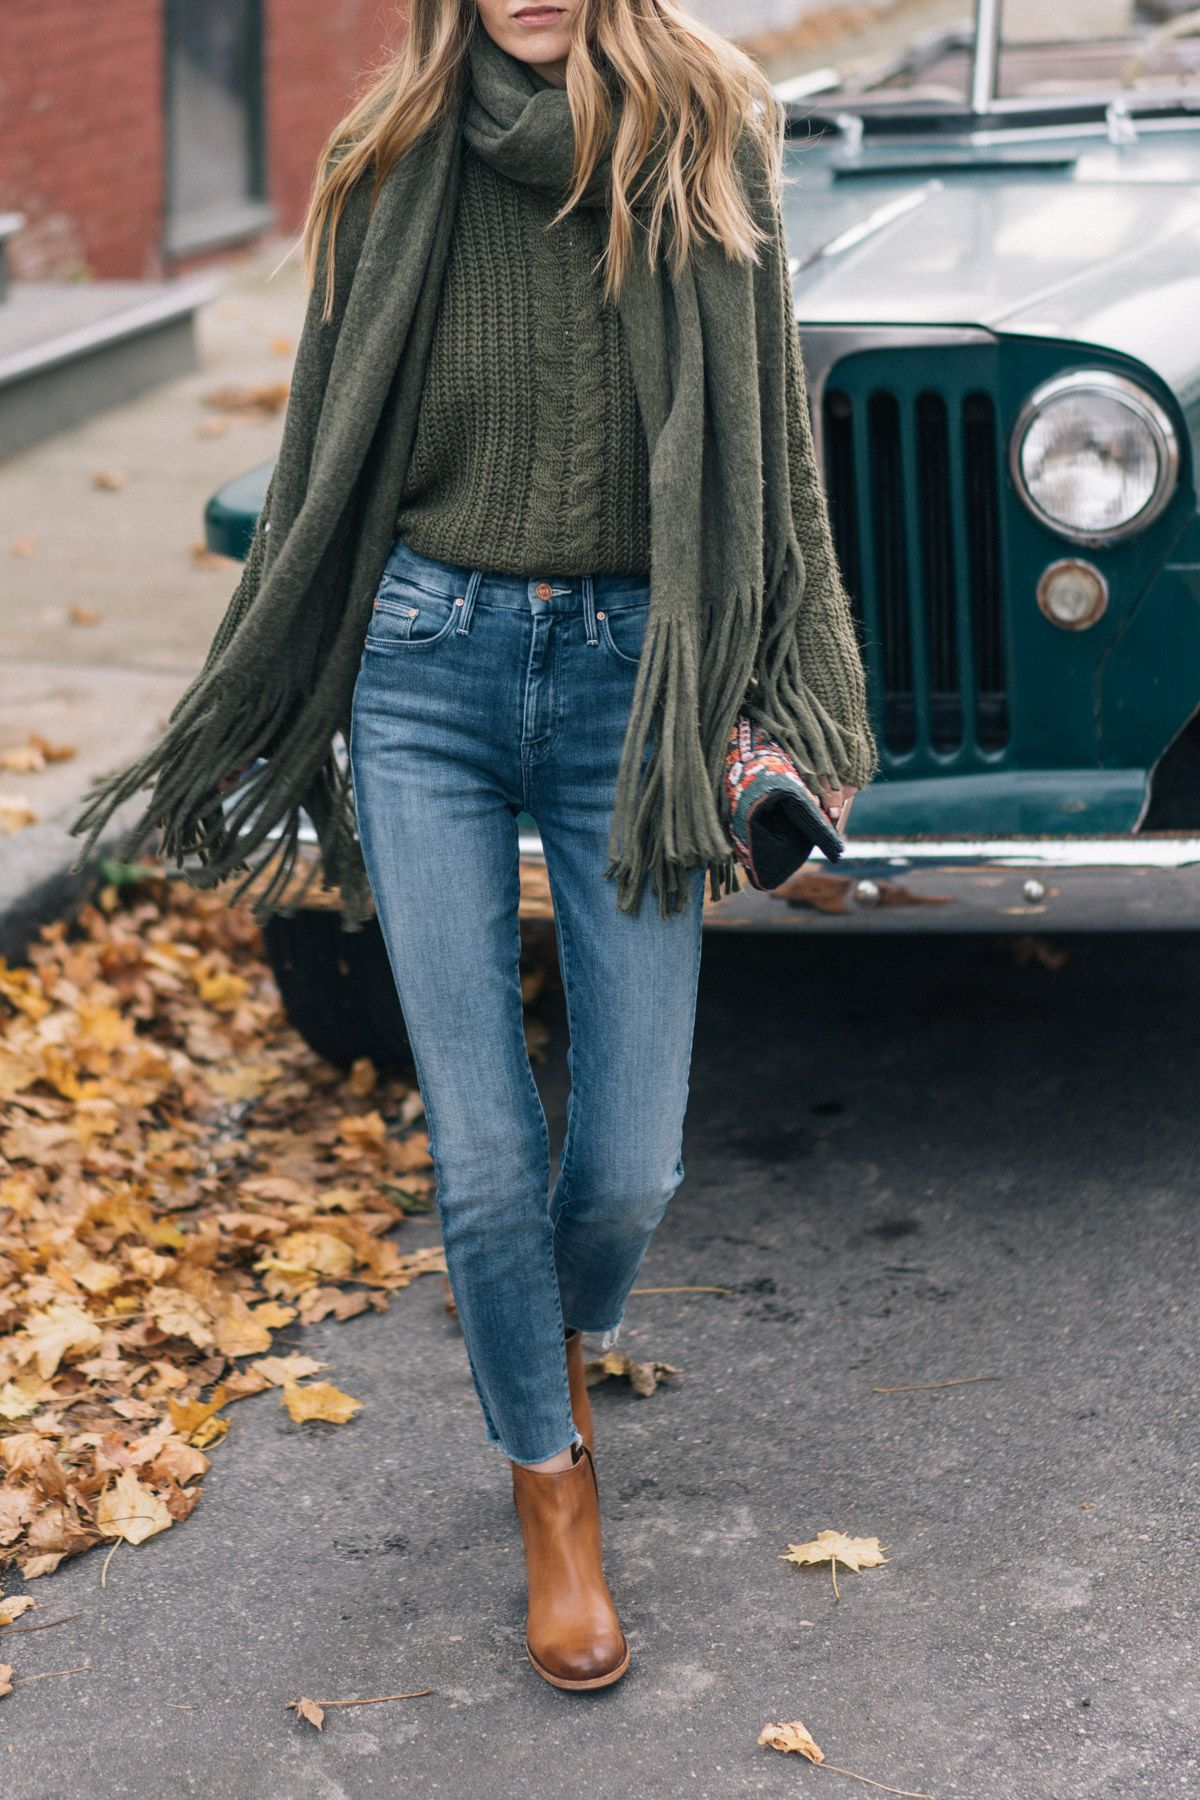 A Cozy Outfit for the Holidays | Jess Ann Kirby